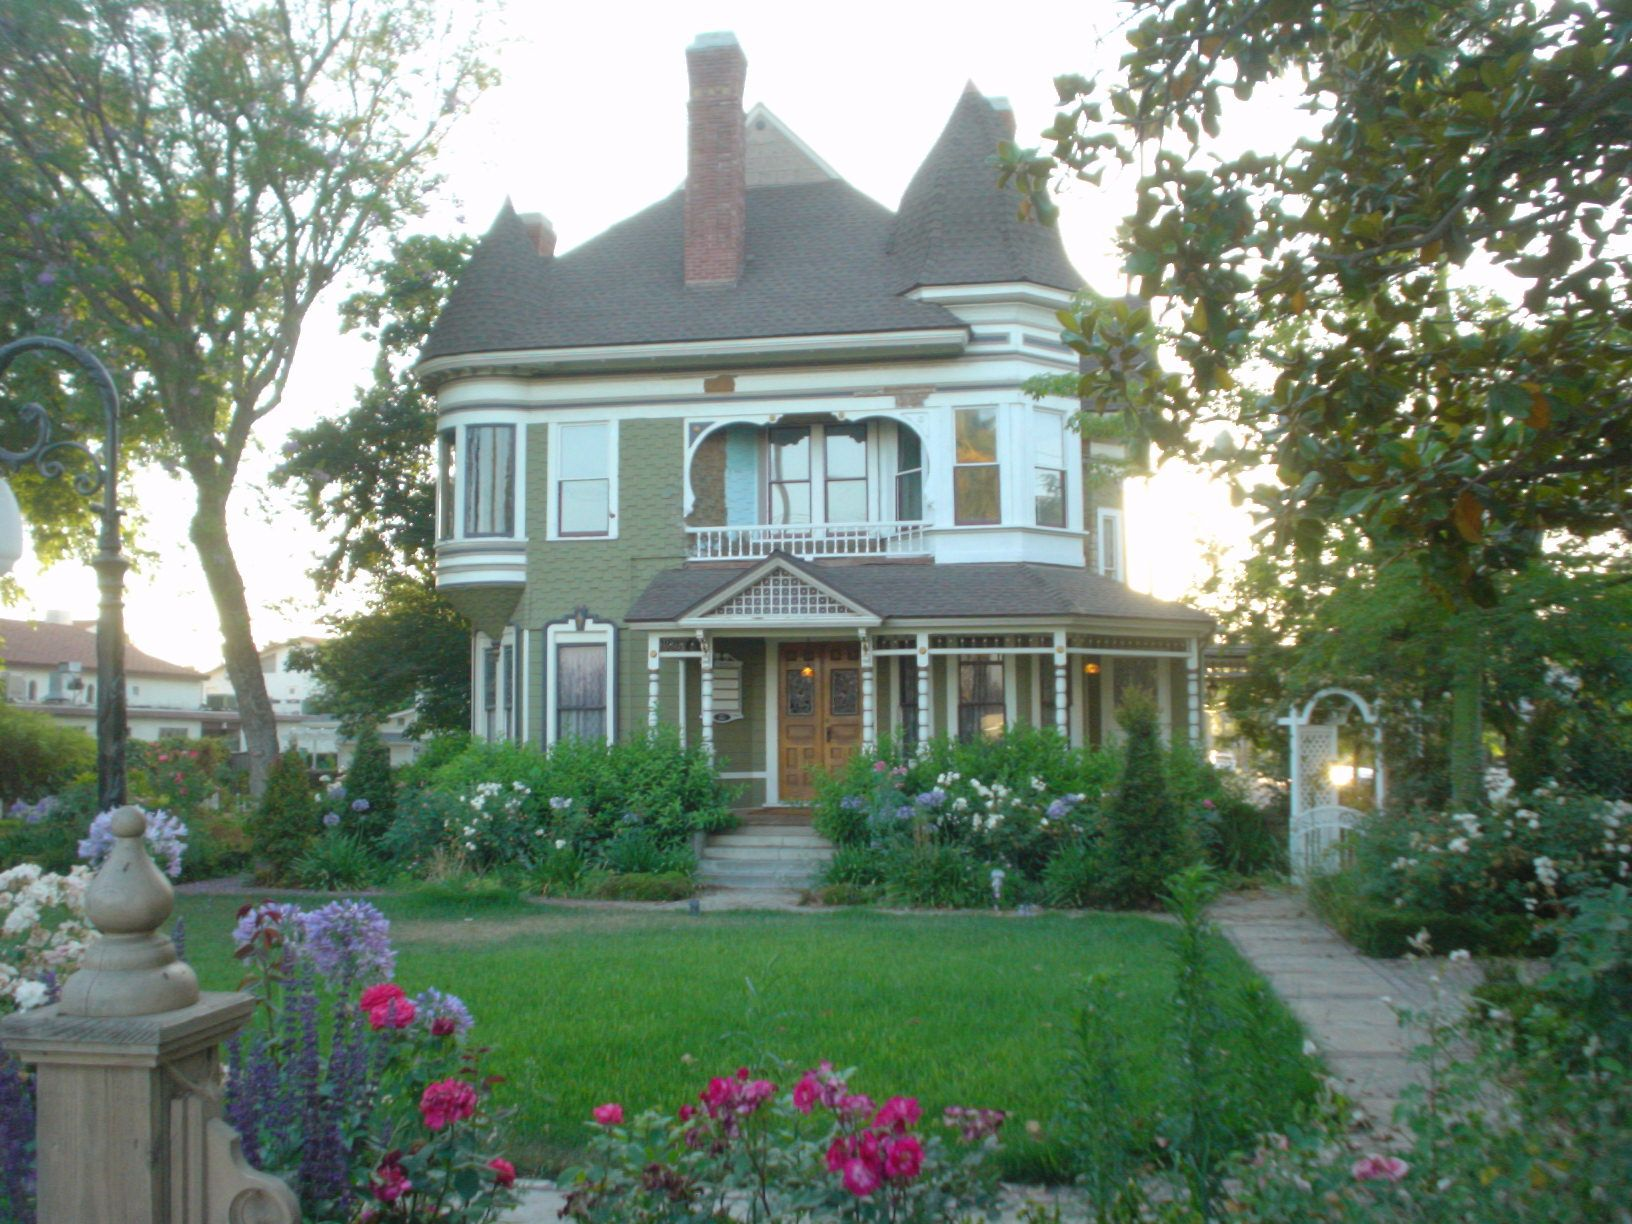 appearing in the 1870 s through 1910 queen anne style house plans appearing in the 1870 s through 1910 queen anne style house plans are an eclectic mix old victorian